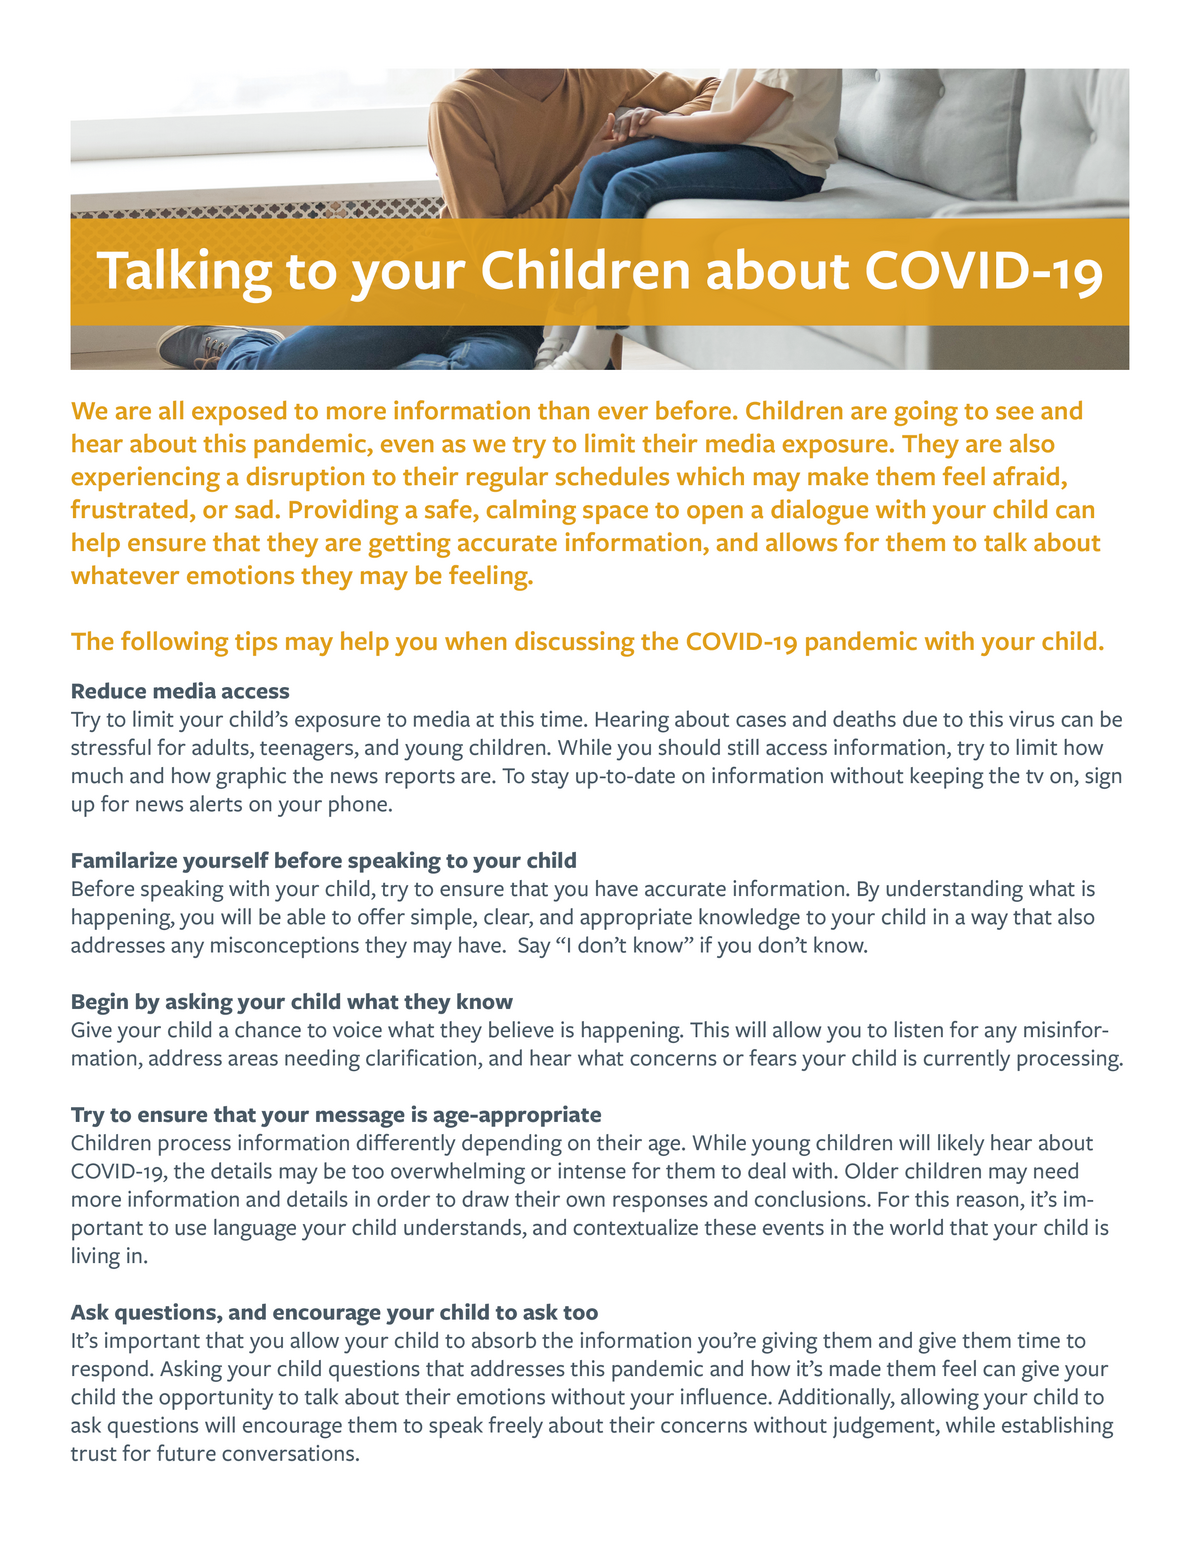 Talking to your Children about Coronavirus - Handout